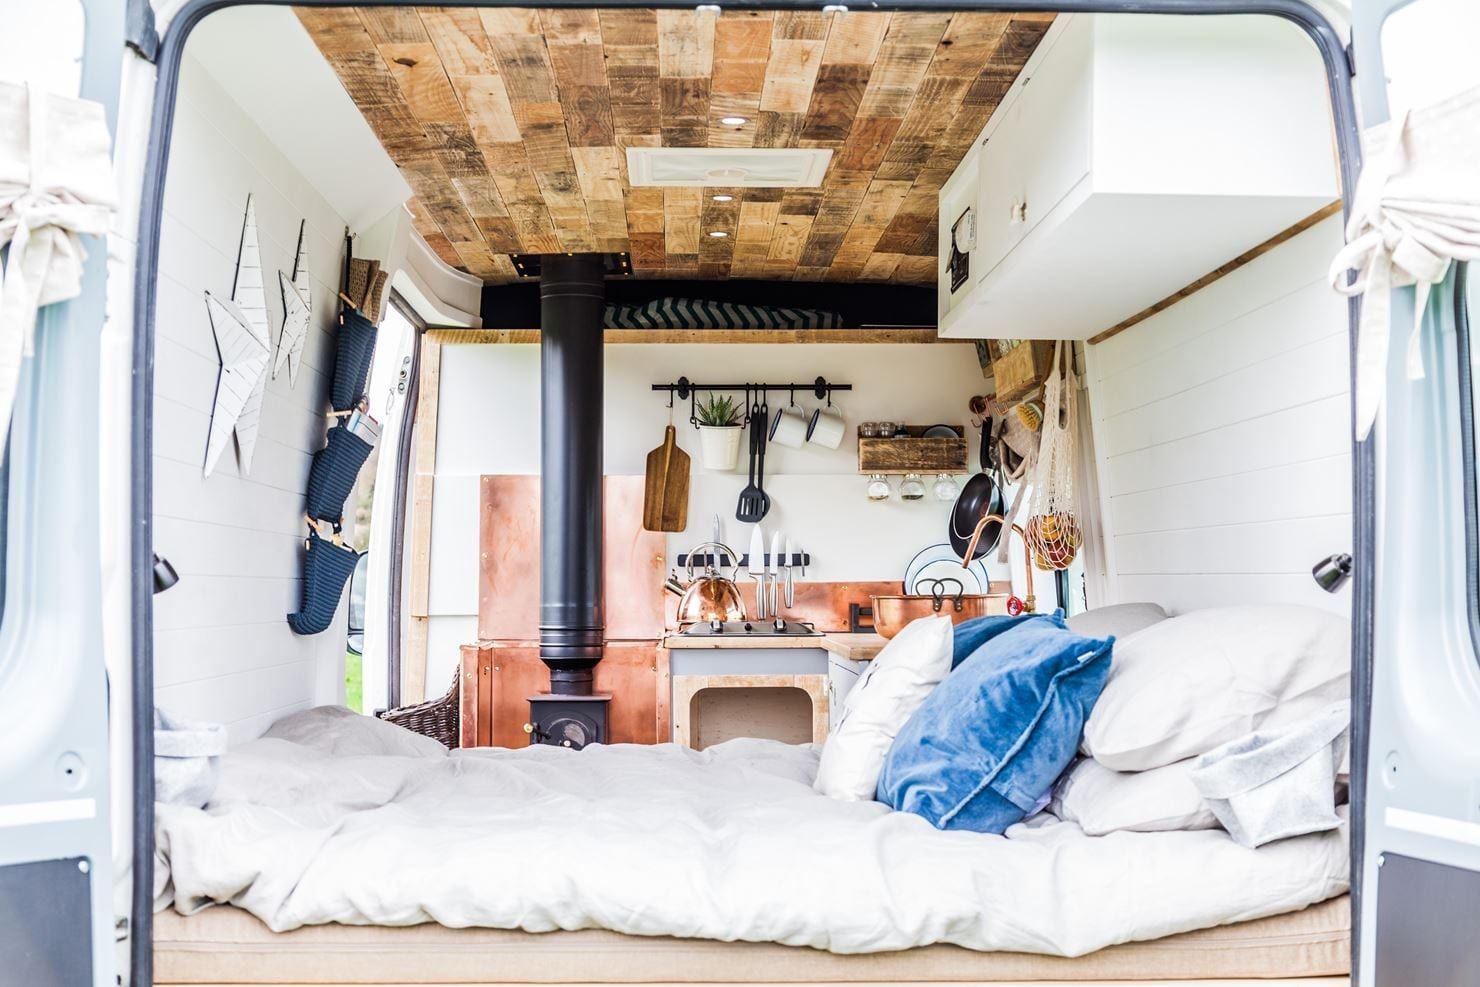 What Type of Heating Should I Install in My Campervan